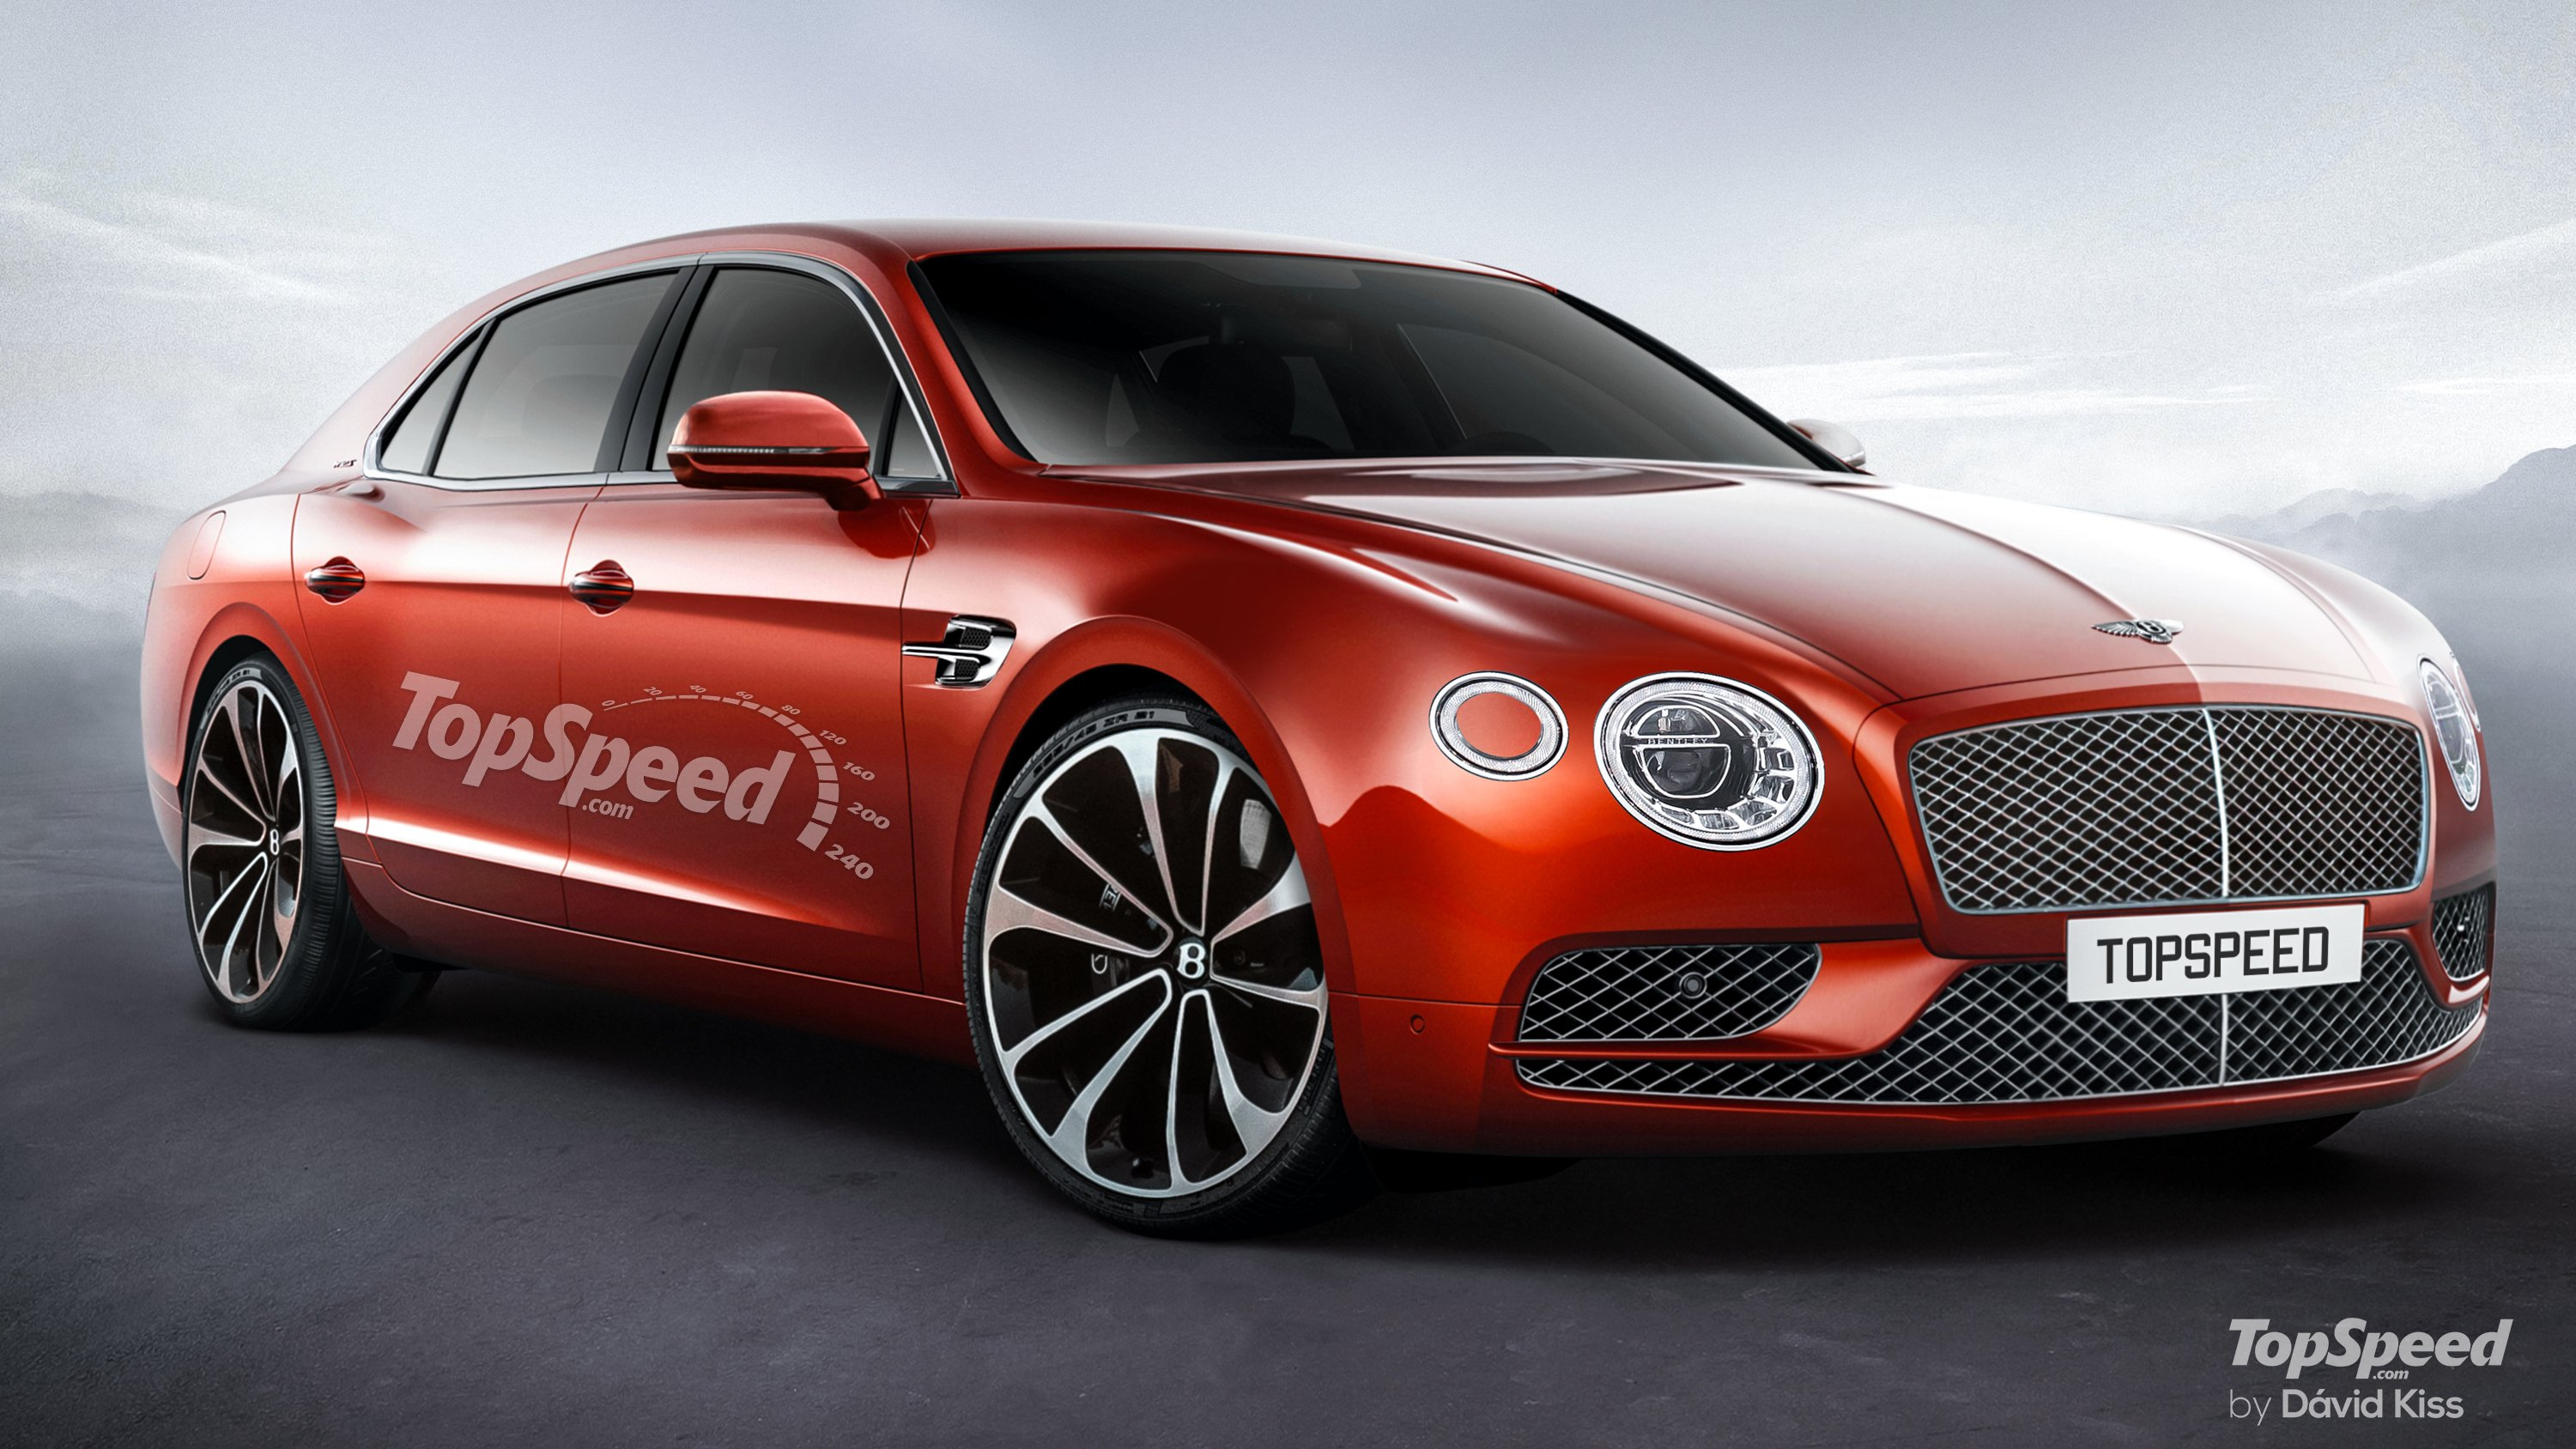 The Best Bentley 2019 Flying Spur Wallpaper Cars Review 3001x1688